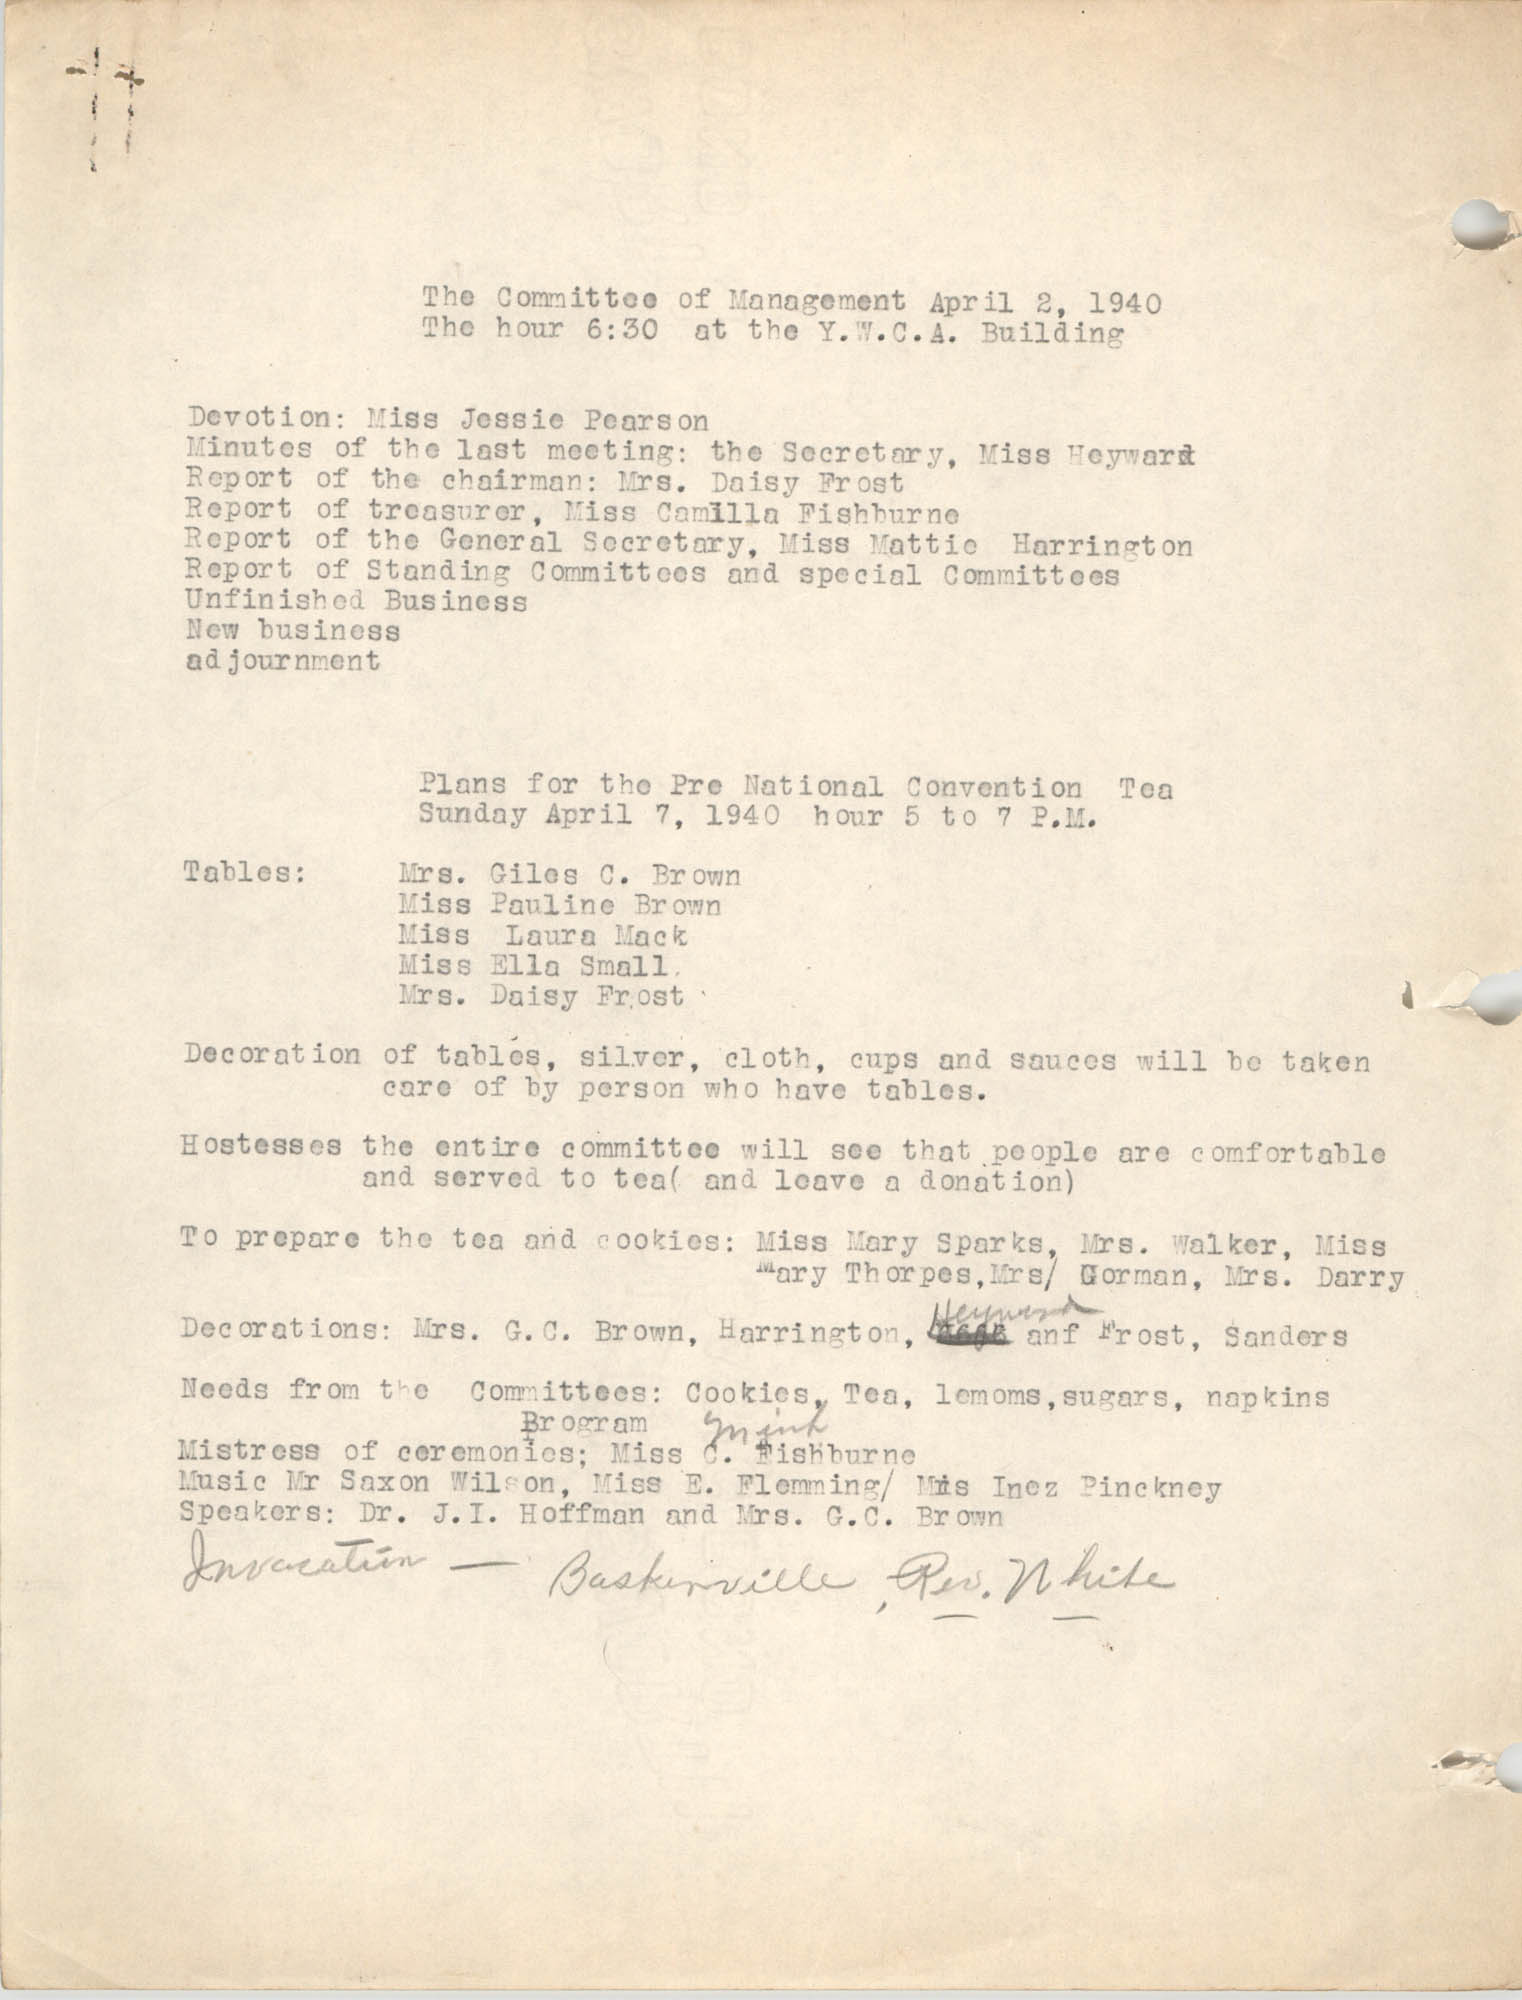 Minutes to the Committee of Management, Coming Street Y.W.C.A., April 2, 1940